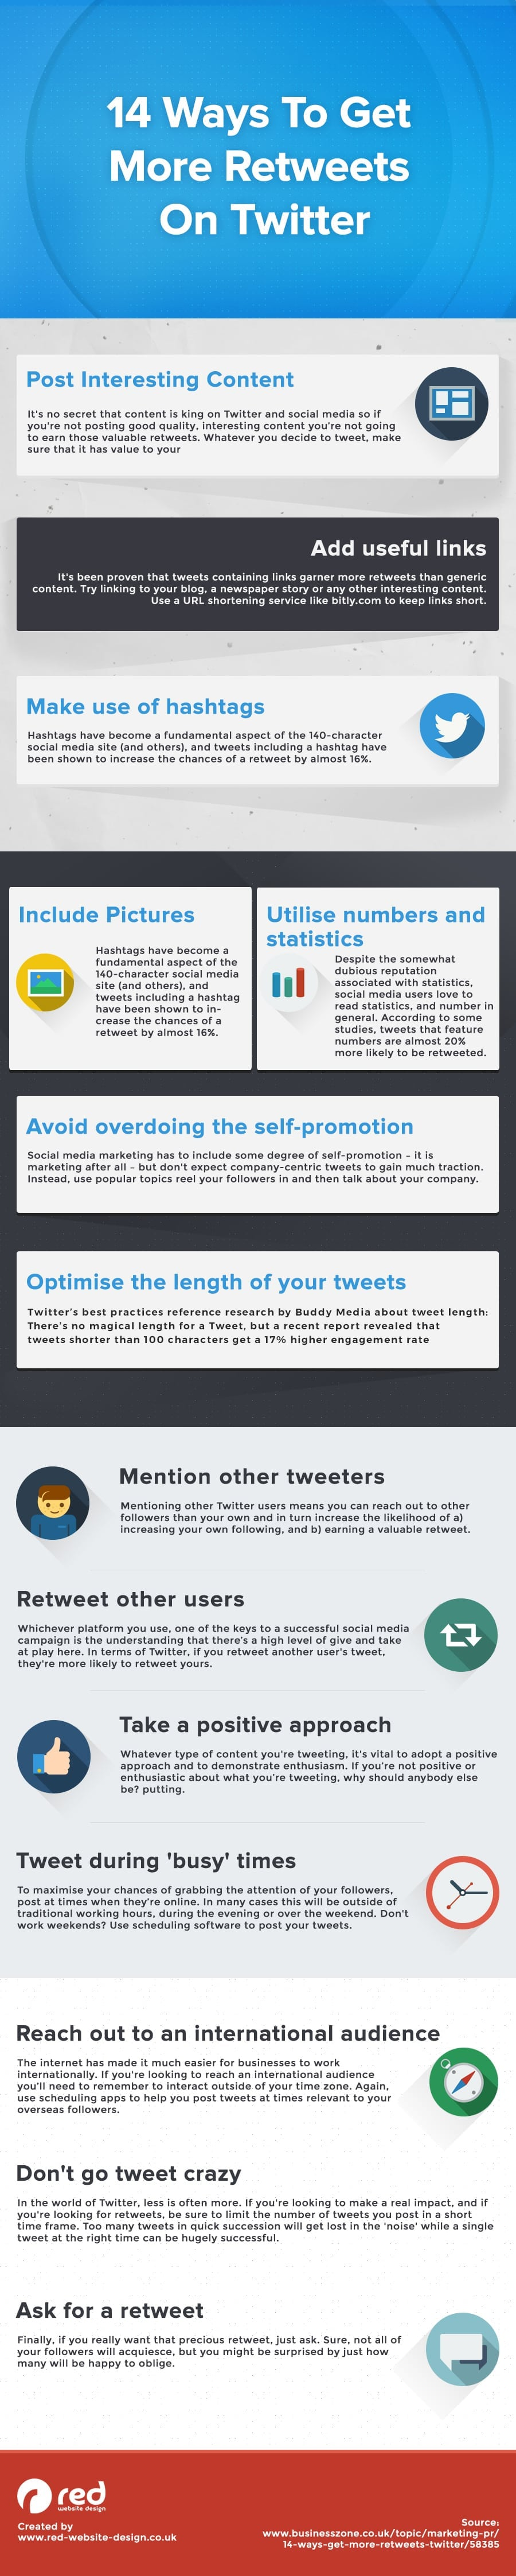 14 Cool Ways To Get More Twitter Retweets